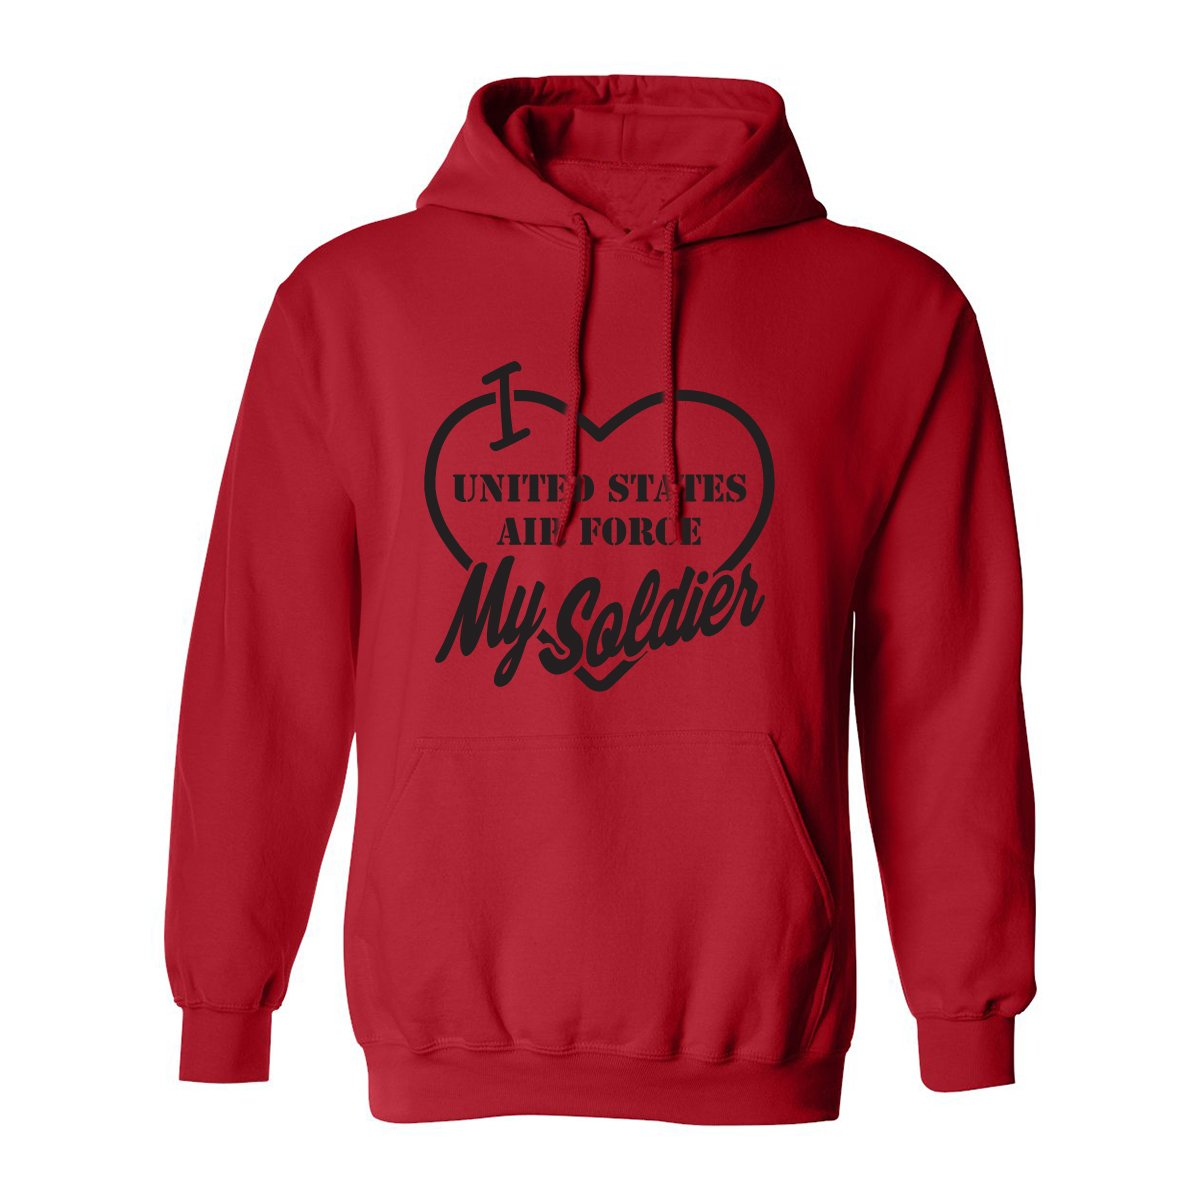 I Love My Soldier (Air Force) Adult Hooded Sweatshirt in Red - XXXX-Large